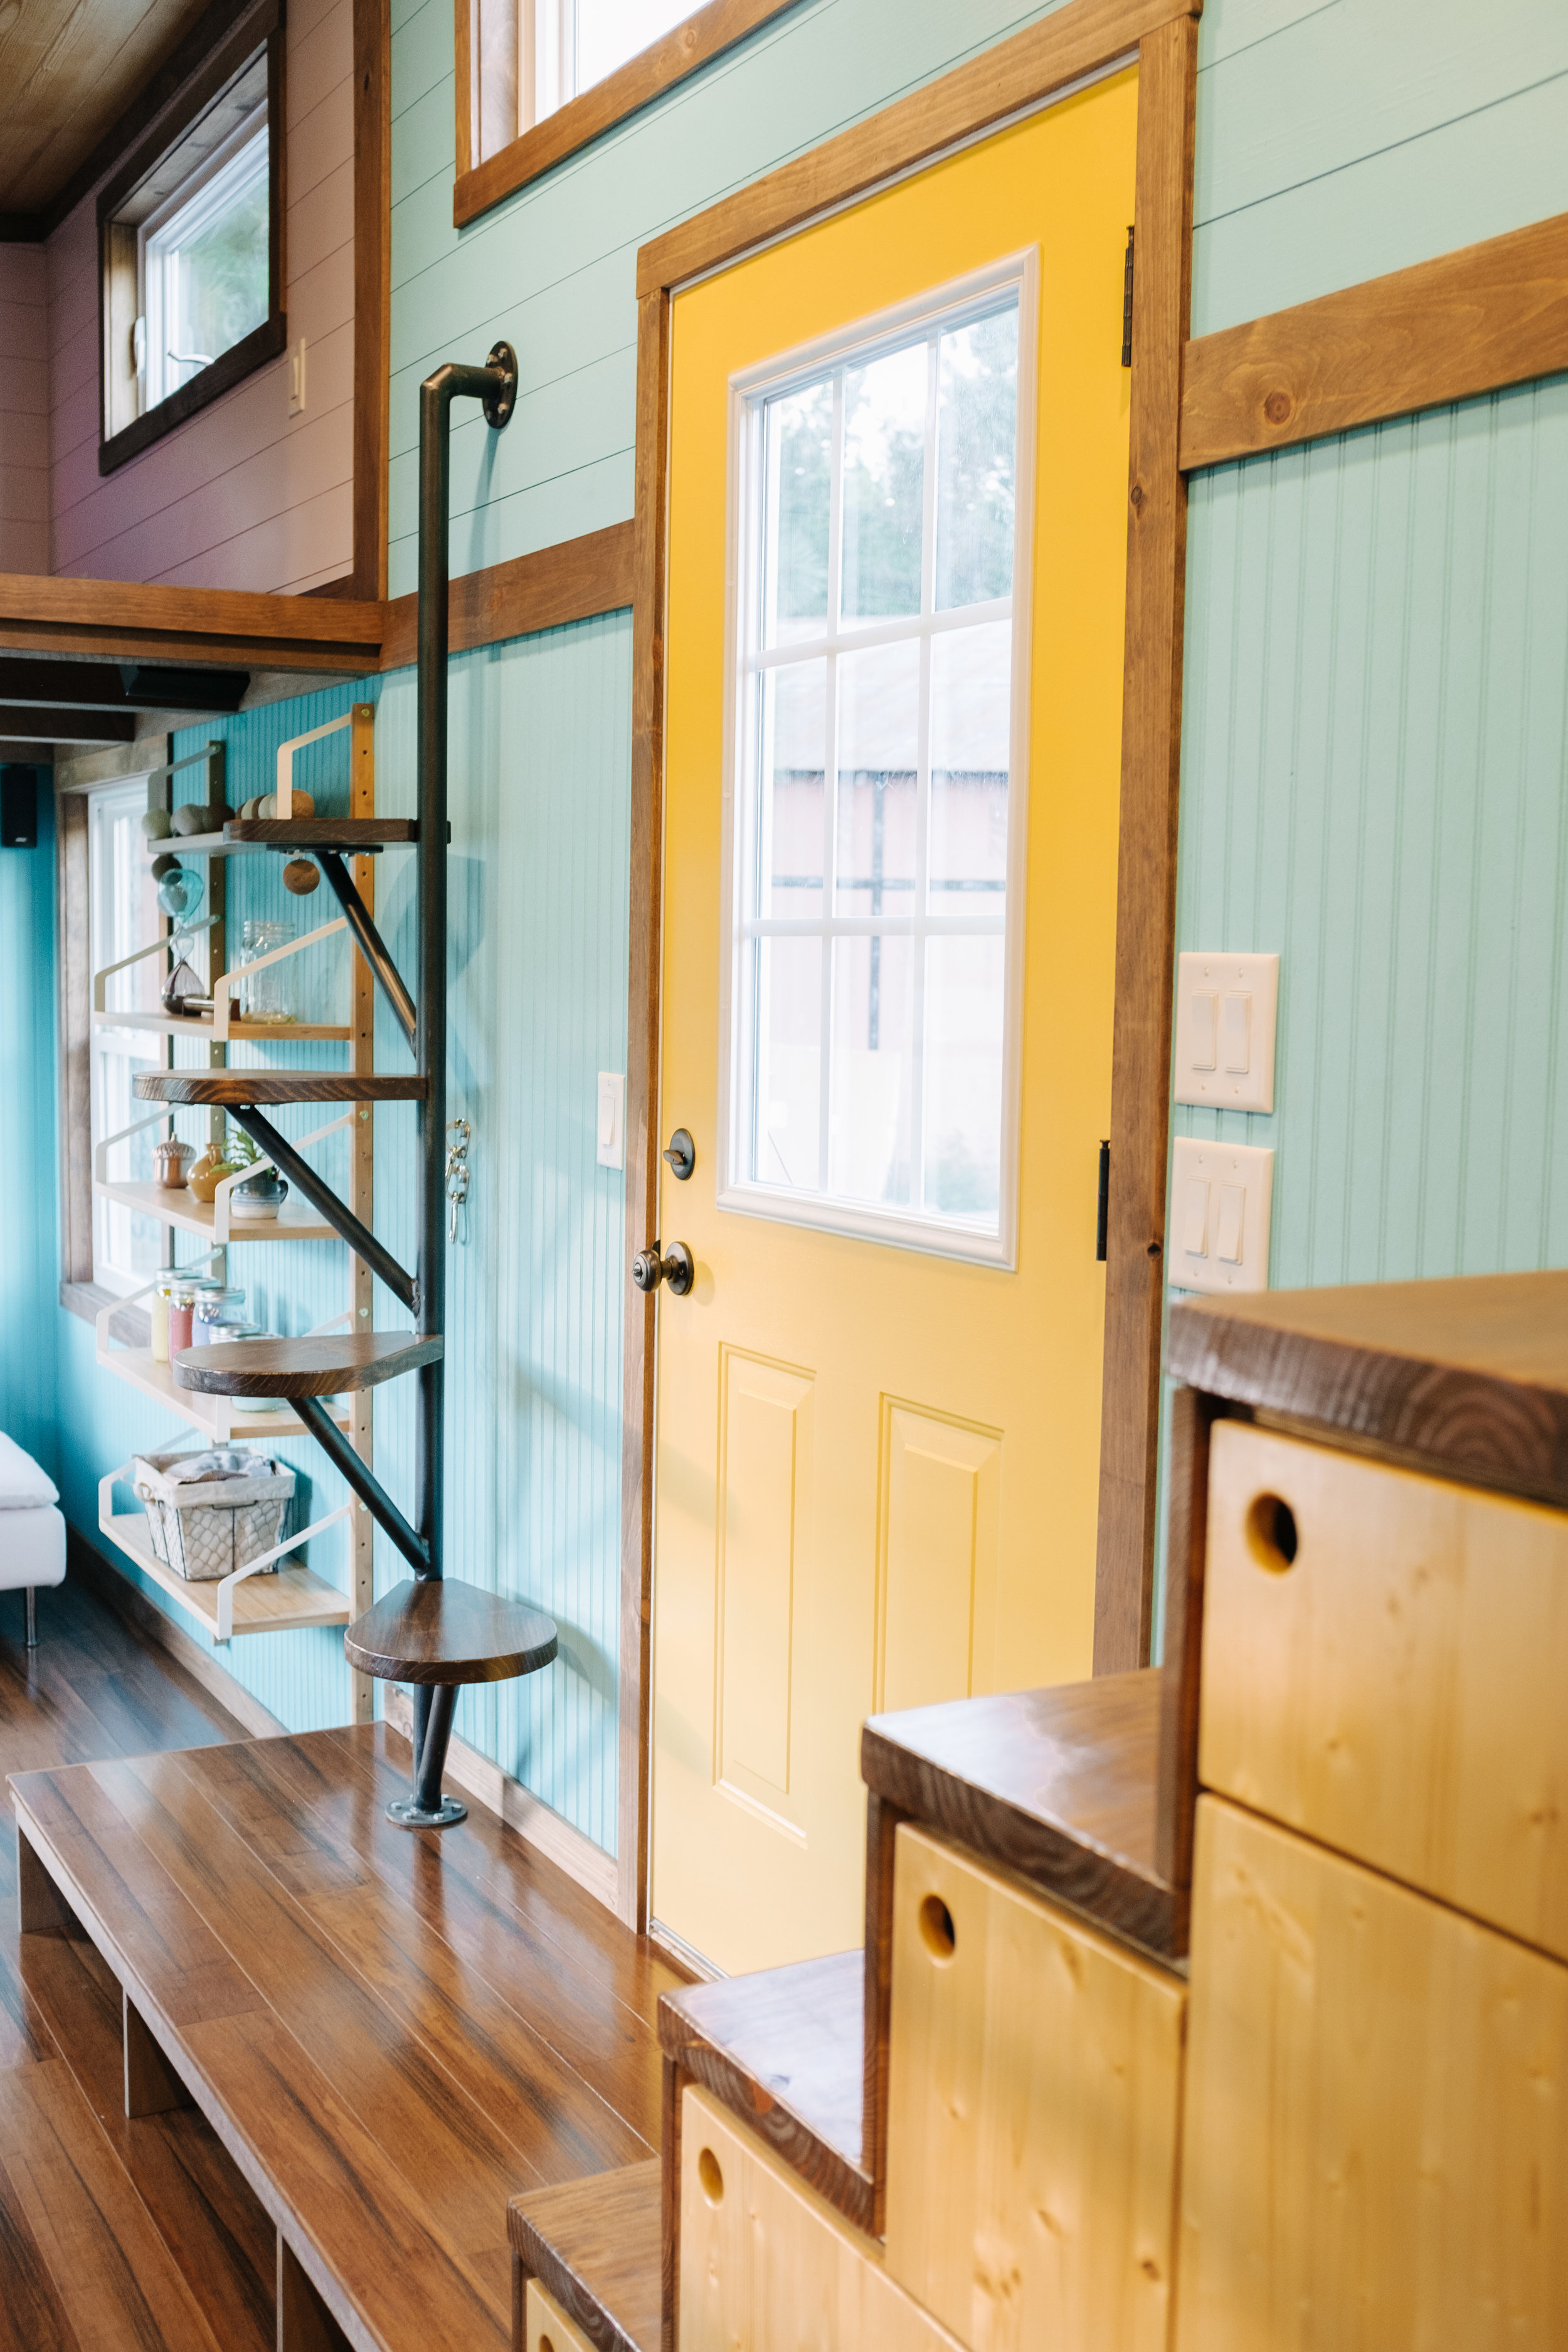 The Big Whimsy by Wind River Tiny Homes - built in storage shelving, cat door, litter box cubby with vent fan,custom lily pad spiral stairs, bamboo flooring